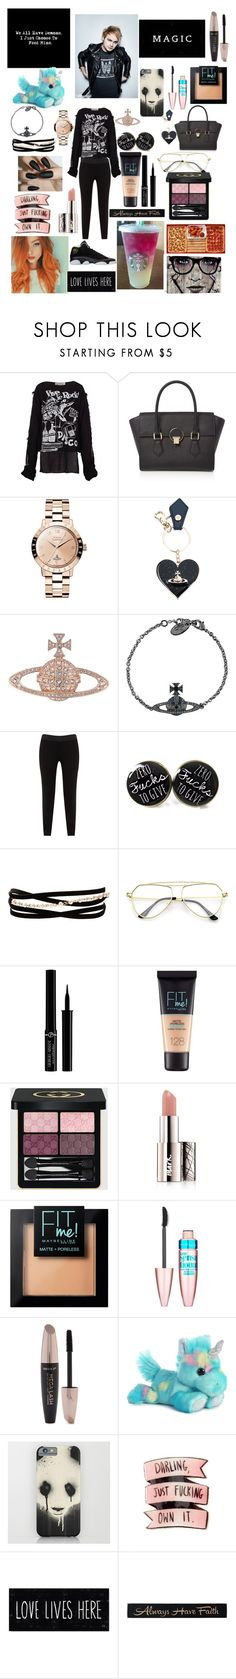 """""""His Girl"""" by snow-queen13 ❤ liked on Polyvore featuring Vivienne Westwood, JunaRose, Kenneth Jay Lane, Giorgio Armani, Maybelline, Gucci, Avon, Forever 21, Percival and DutchCrafters"""